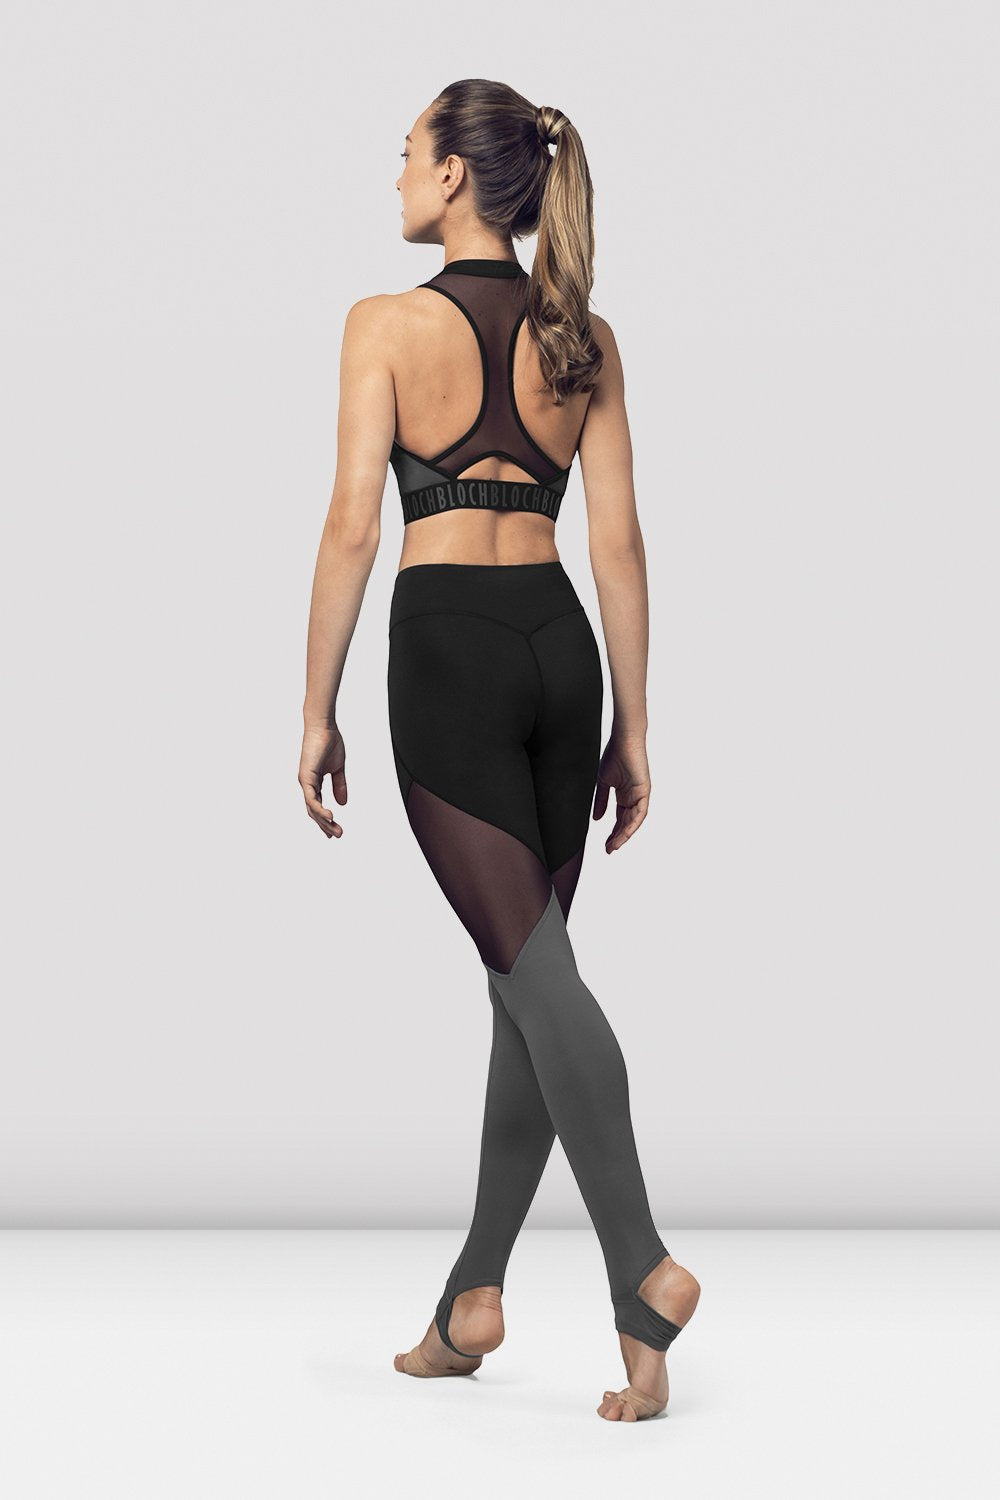 Black Bloch Ladies Zip Front Mesh Back Crop Top on female model in parallel fourth position on releve facing back corner